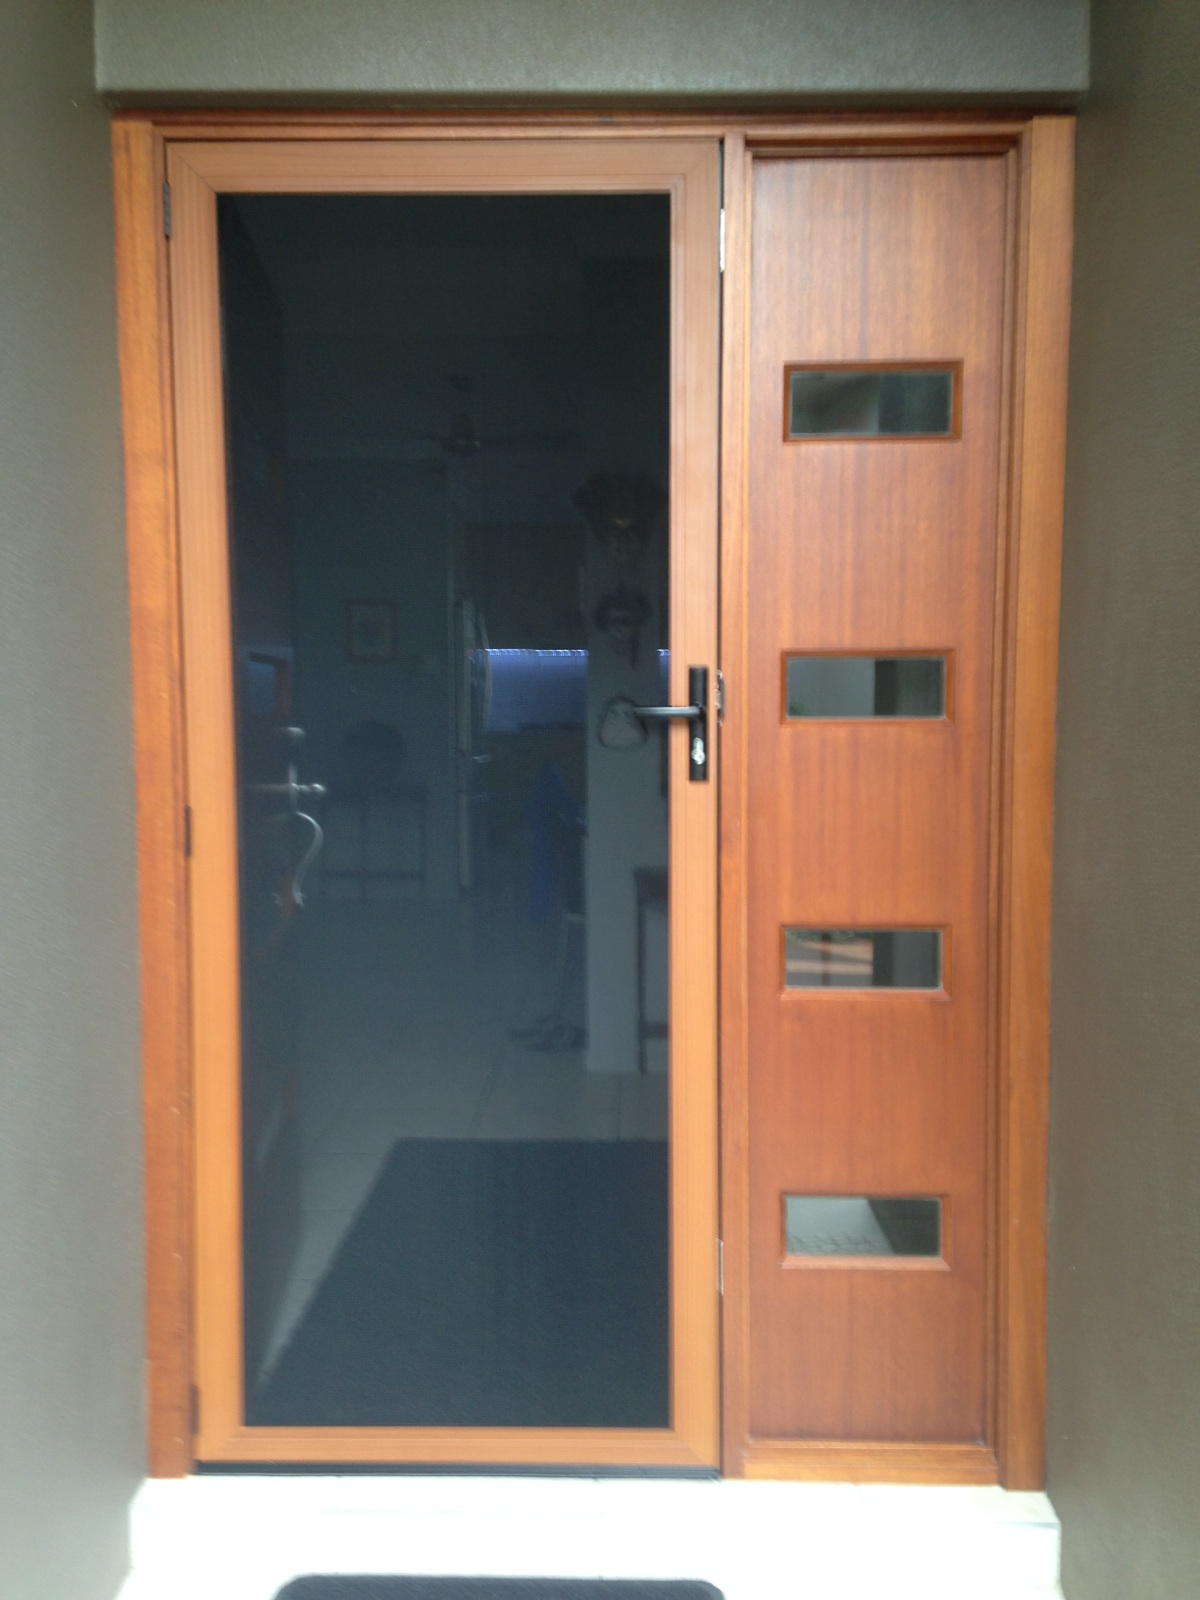 Secureview Door with Timber look Frame